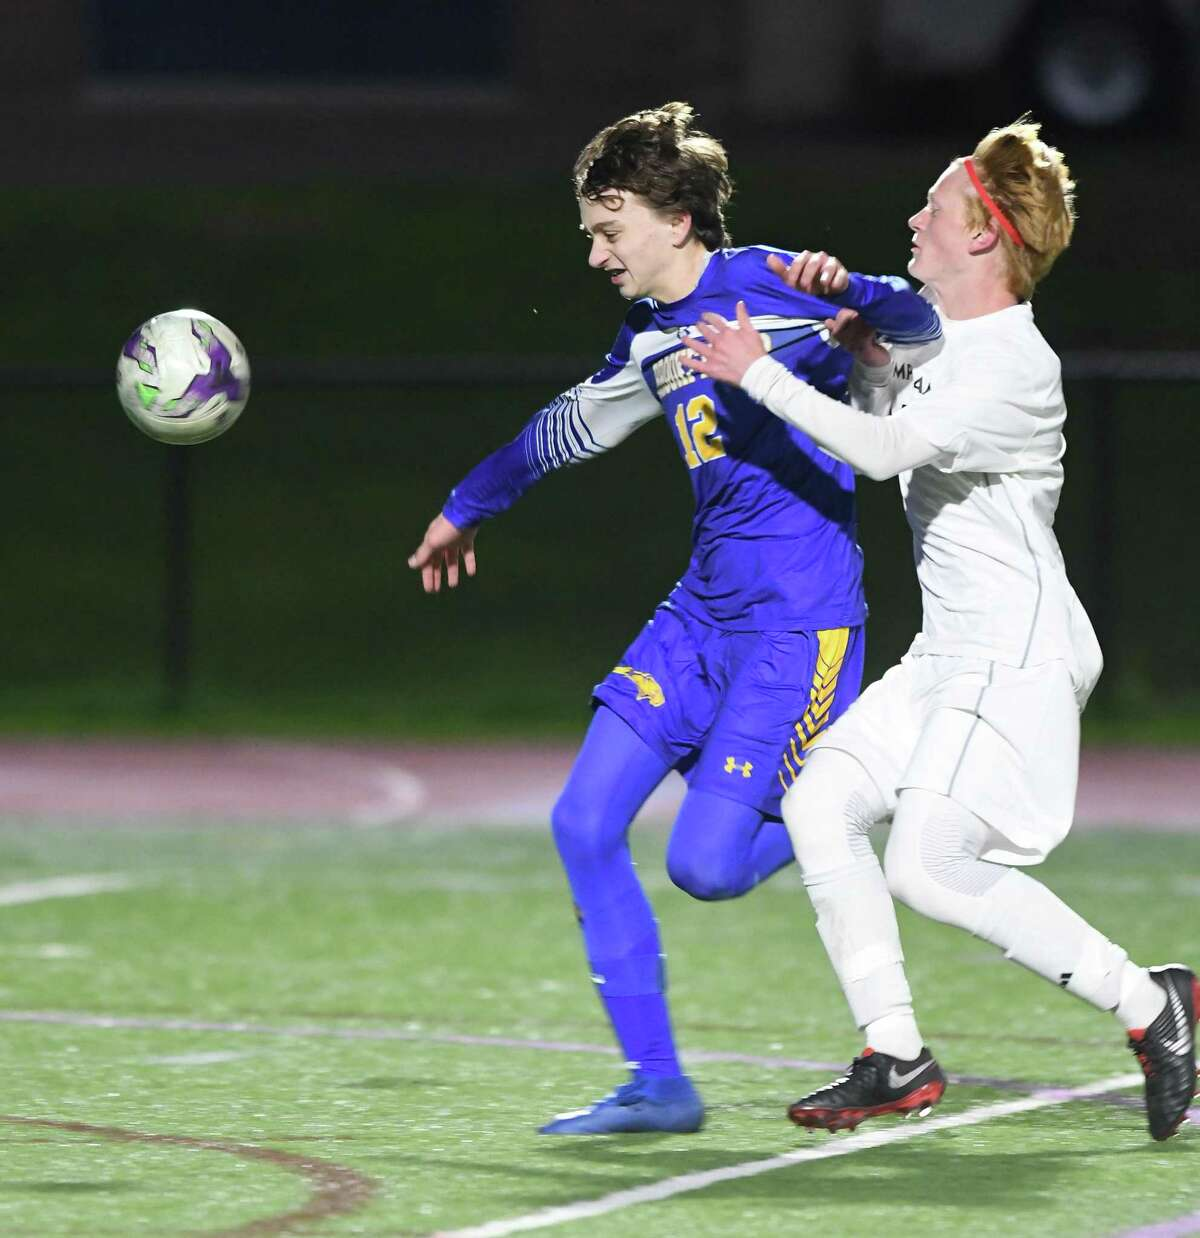 Brookfield?'s Marcus Dalton, left, and Pomperaug?'s Jack O?'Briend during the Pomperaug at Brookfield boys soccer game, Oct. 22, 2018.